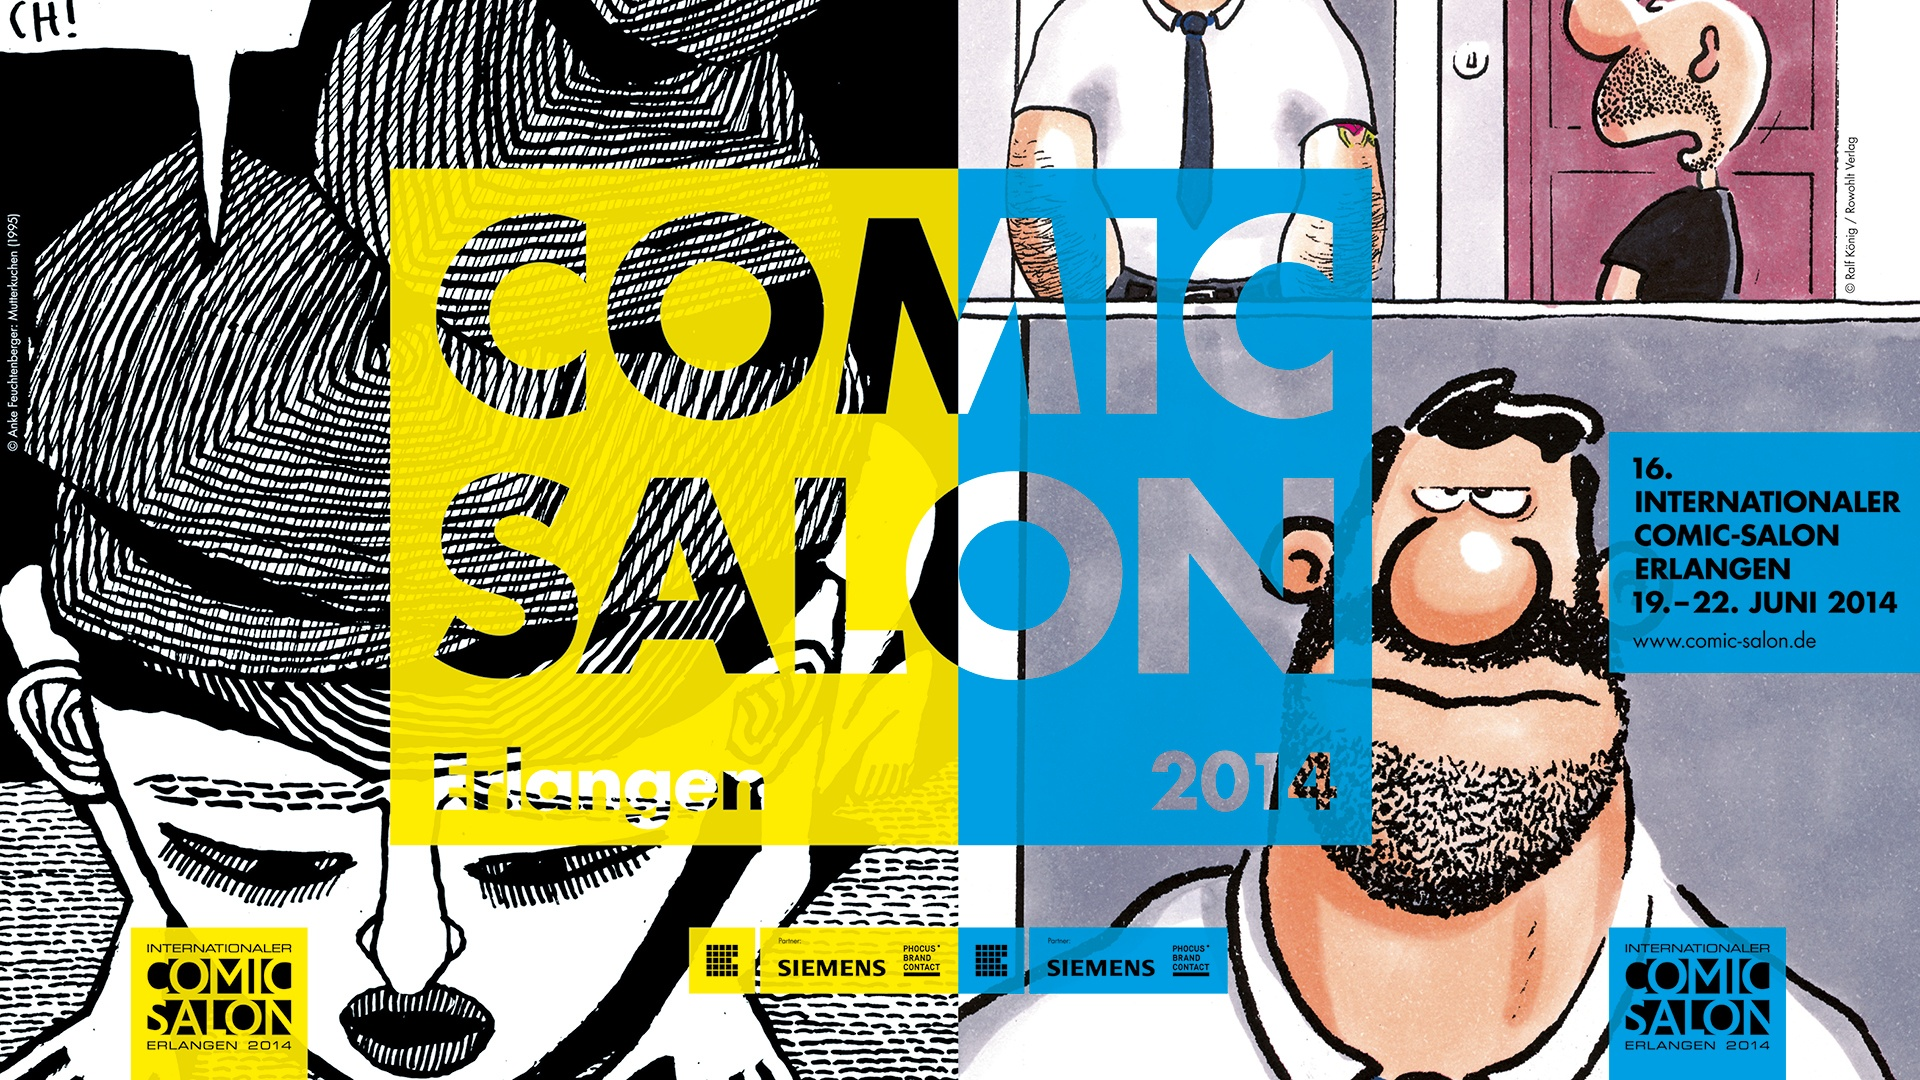 Corporate Design Comic-Salon Erlangen